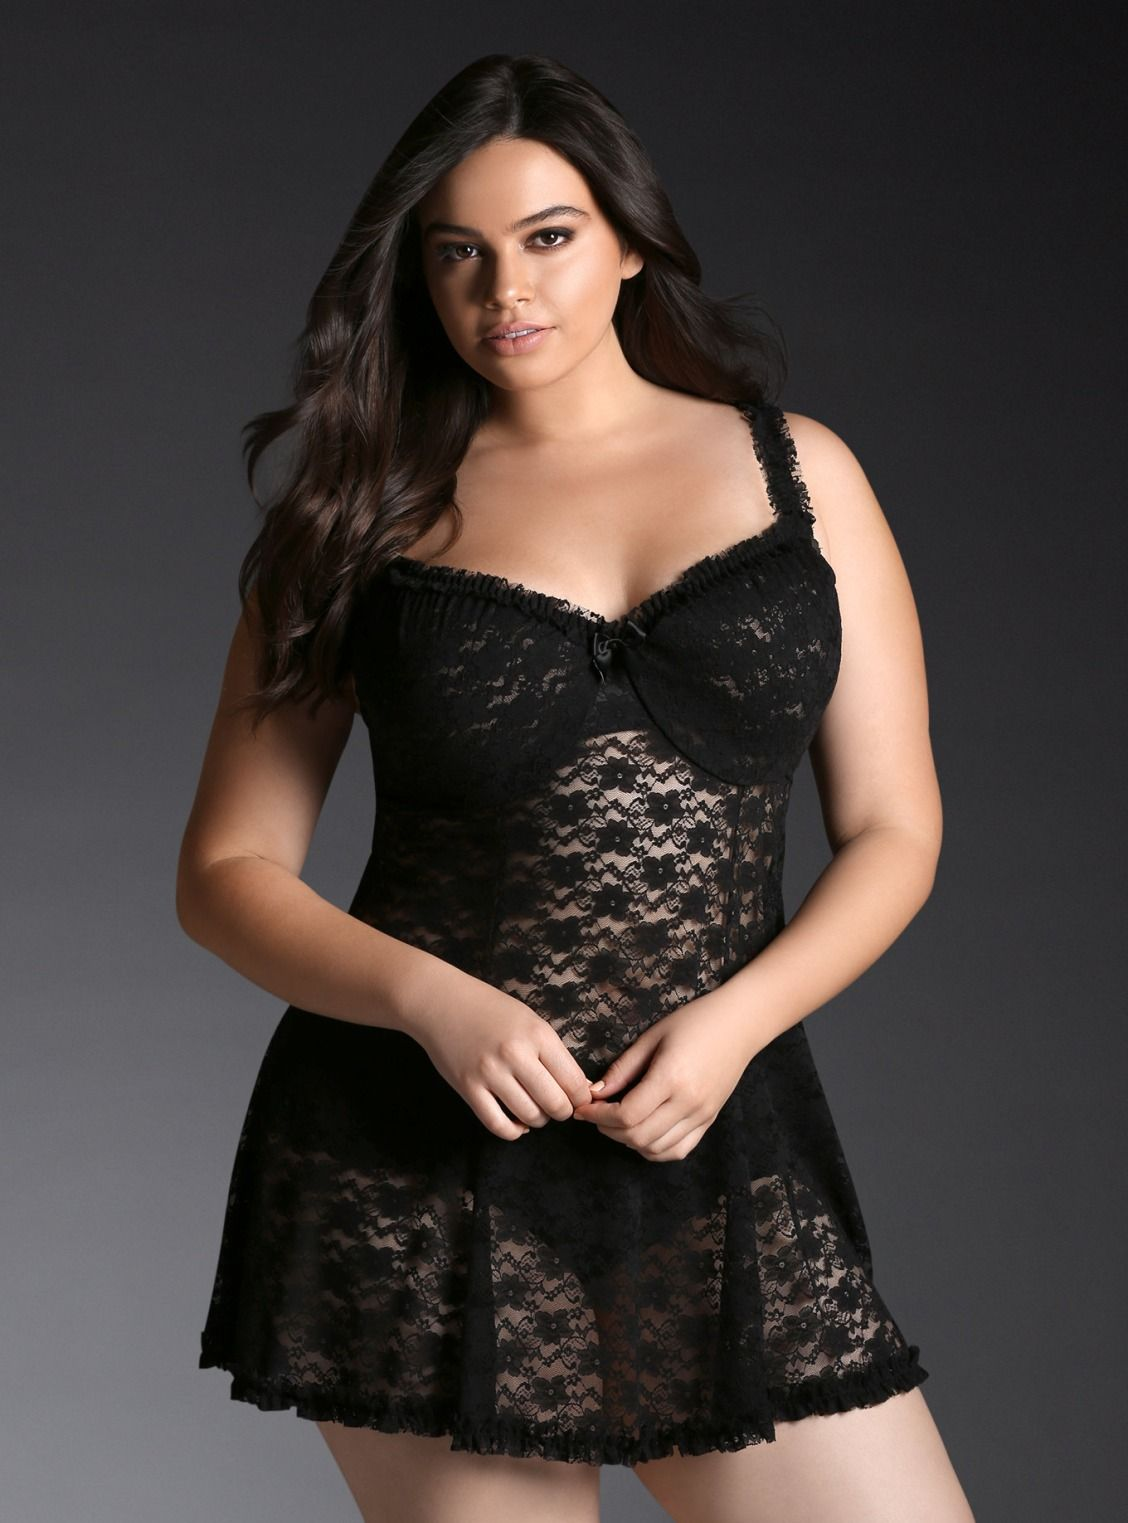 New Year Sexy | Torrid Plus Size | #TorridInsider